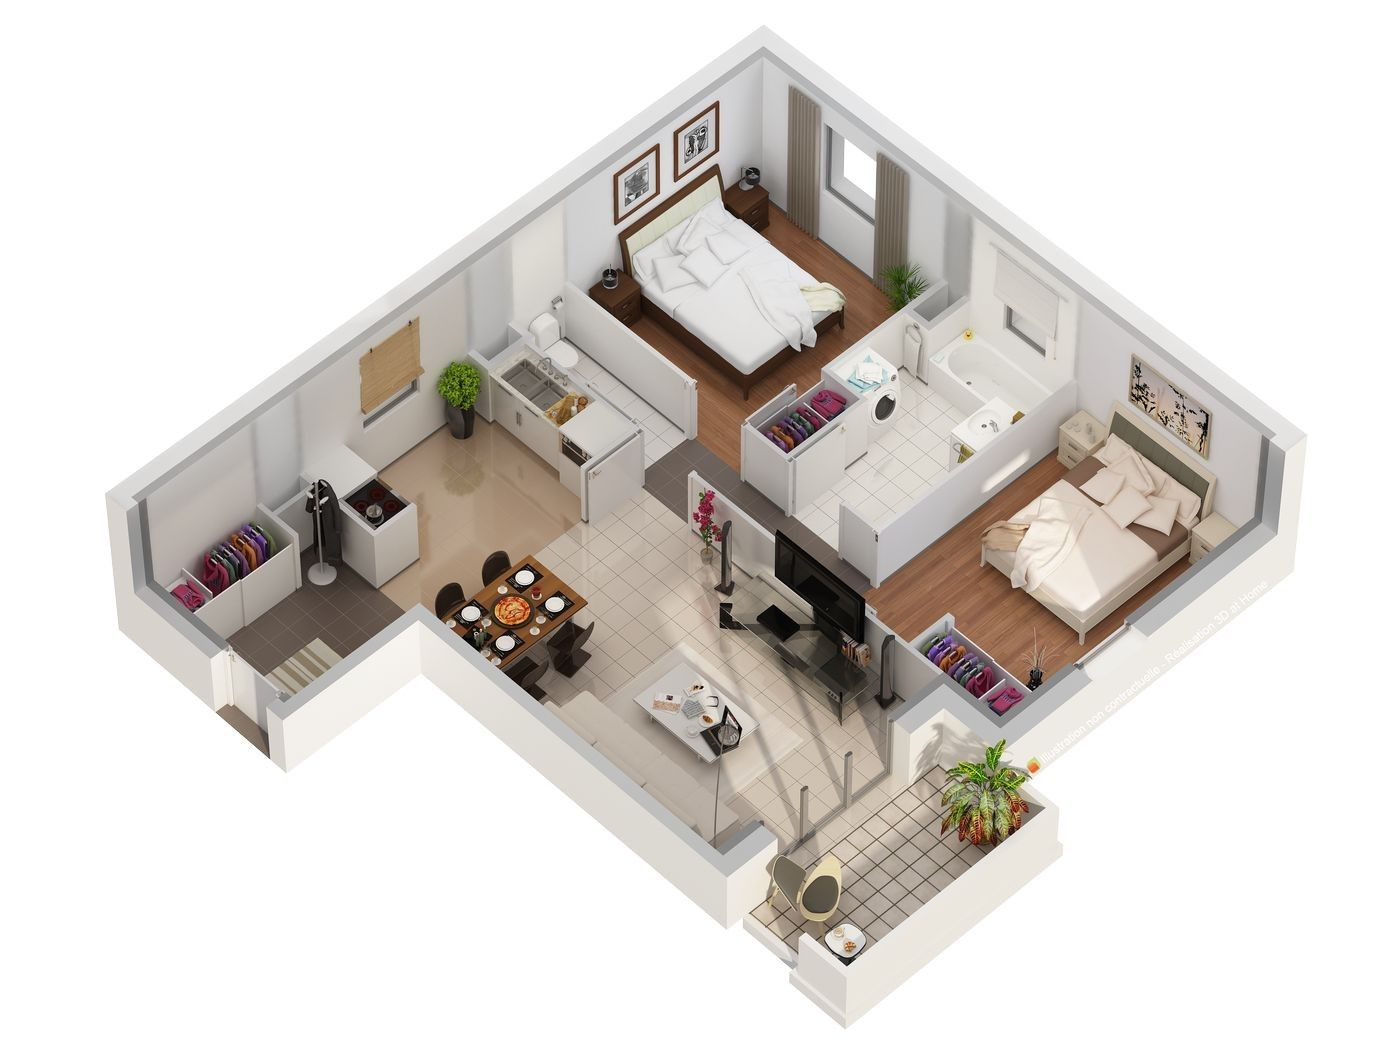 Aménagement Appartement 80m2 Plan 3d Appartement Plans 3d En 2019 Planos Casas Una